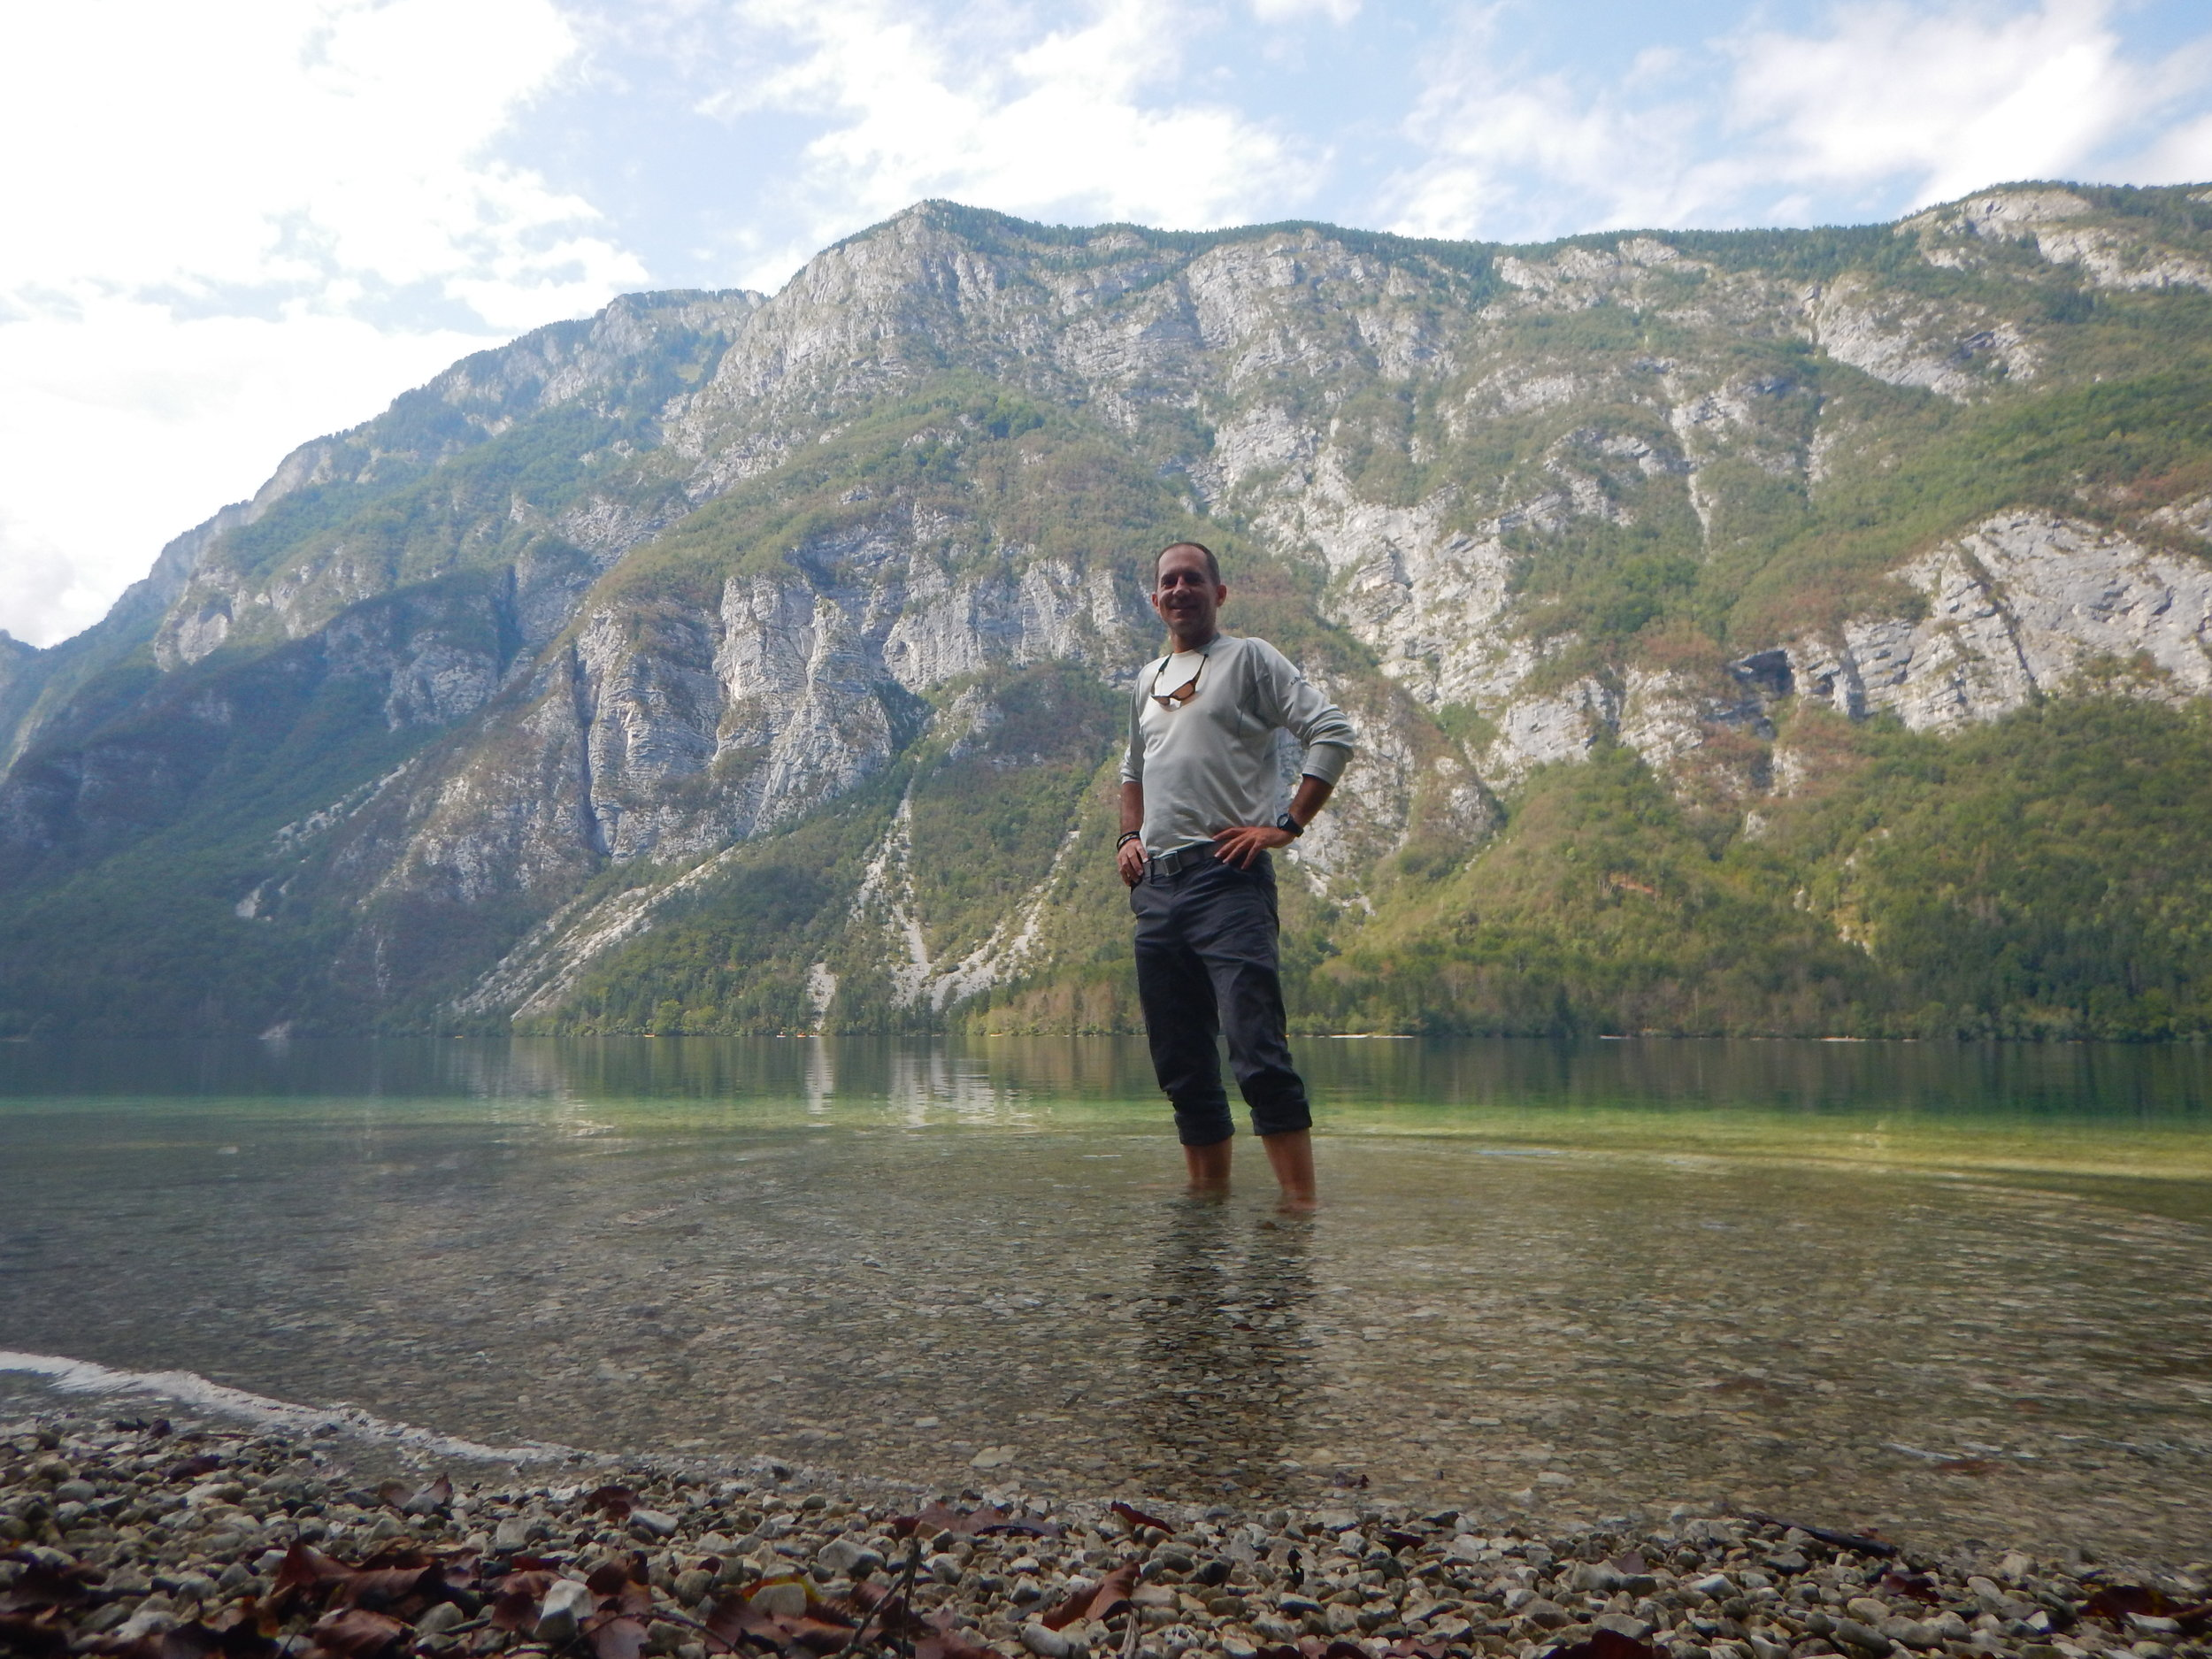 Wading in the refreshingly cool water of Lake Bohinj after a long day of hiking.